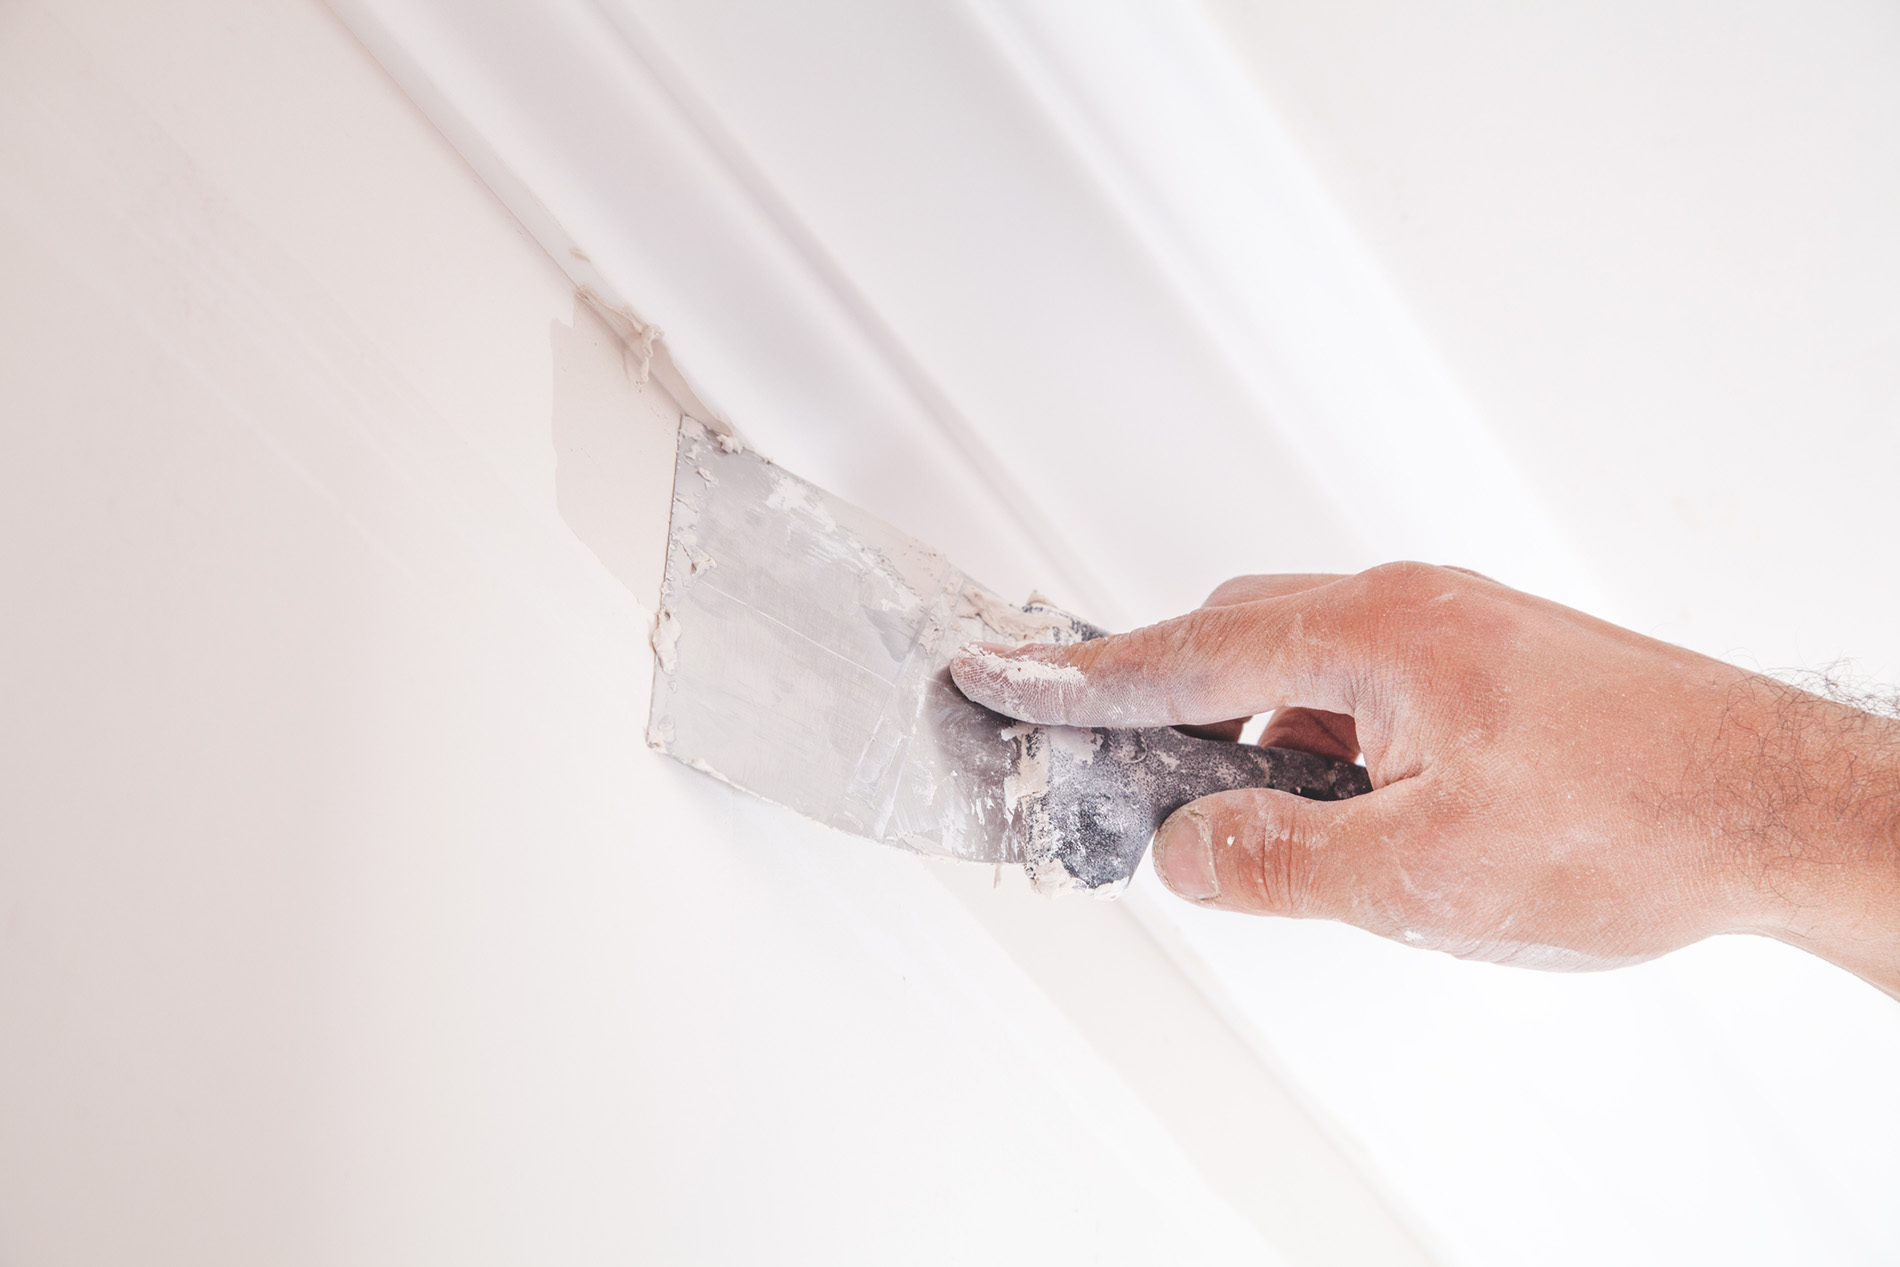 Plastering wall with spatula.